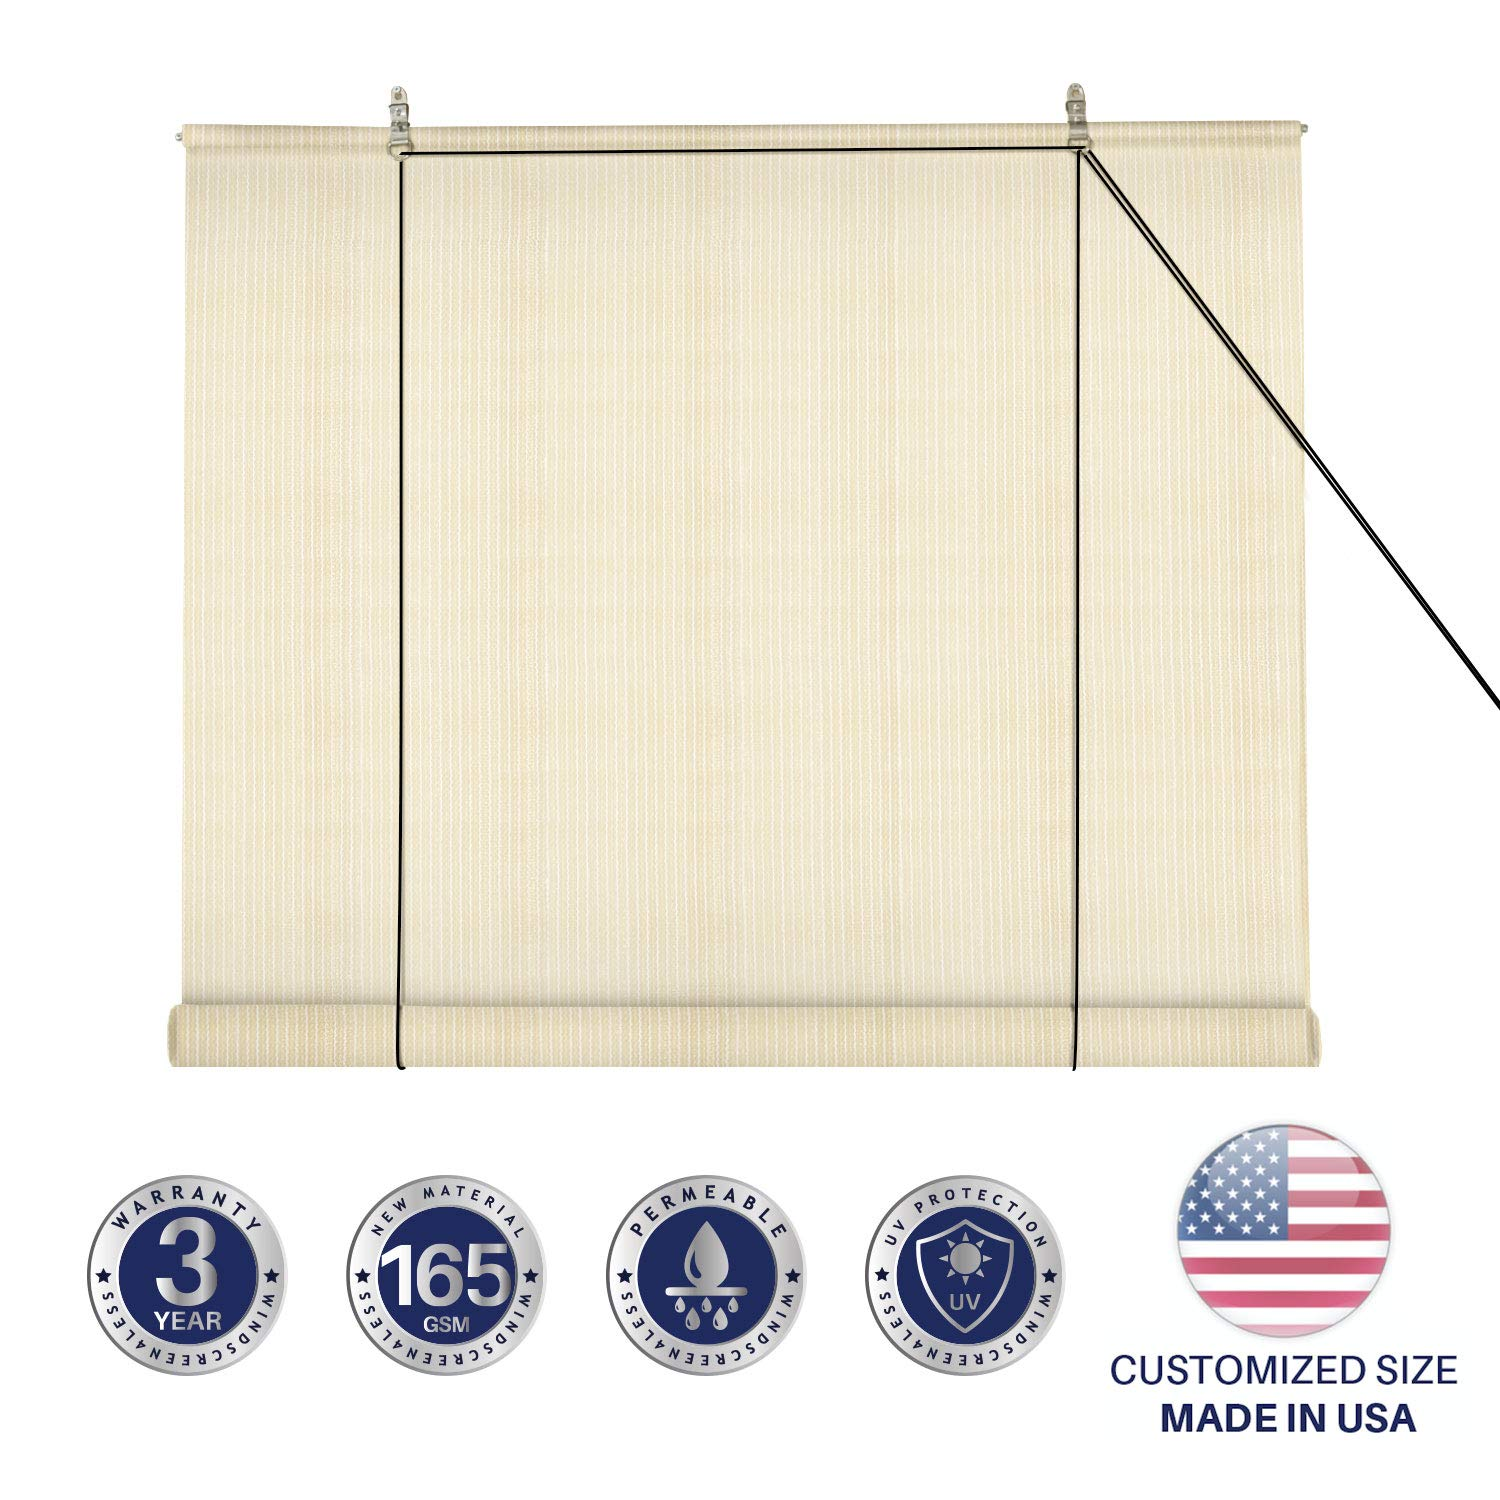 Windscreen4less Exterior Roller Shade Blinds Outdoor Roll Up Shade with 90% UV Protection Privacy for Deck Back Yard Gazebo Pergola Balcony Patio Porch Carport 8' W x 5' L Beige